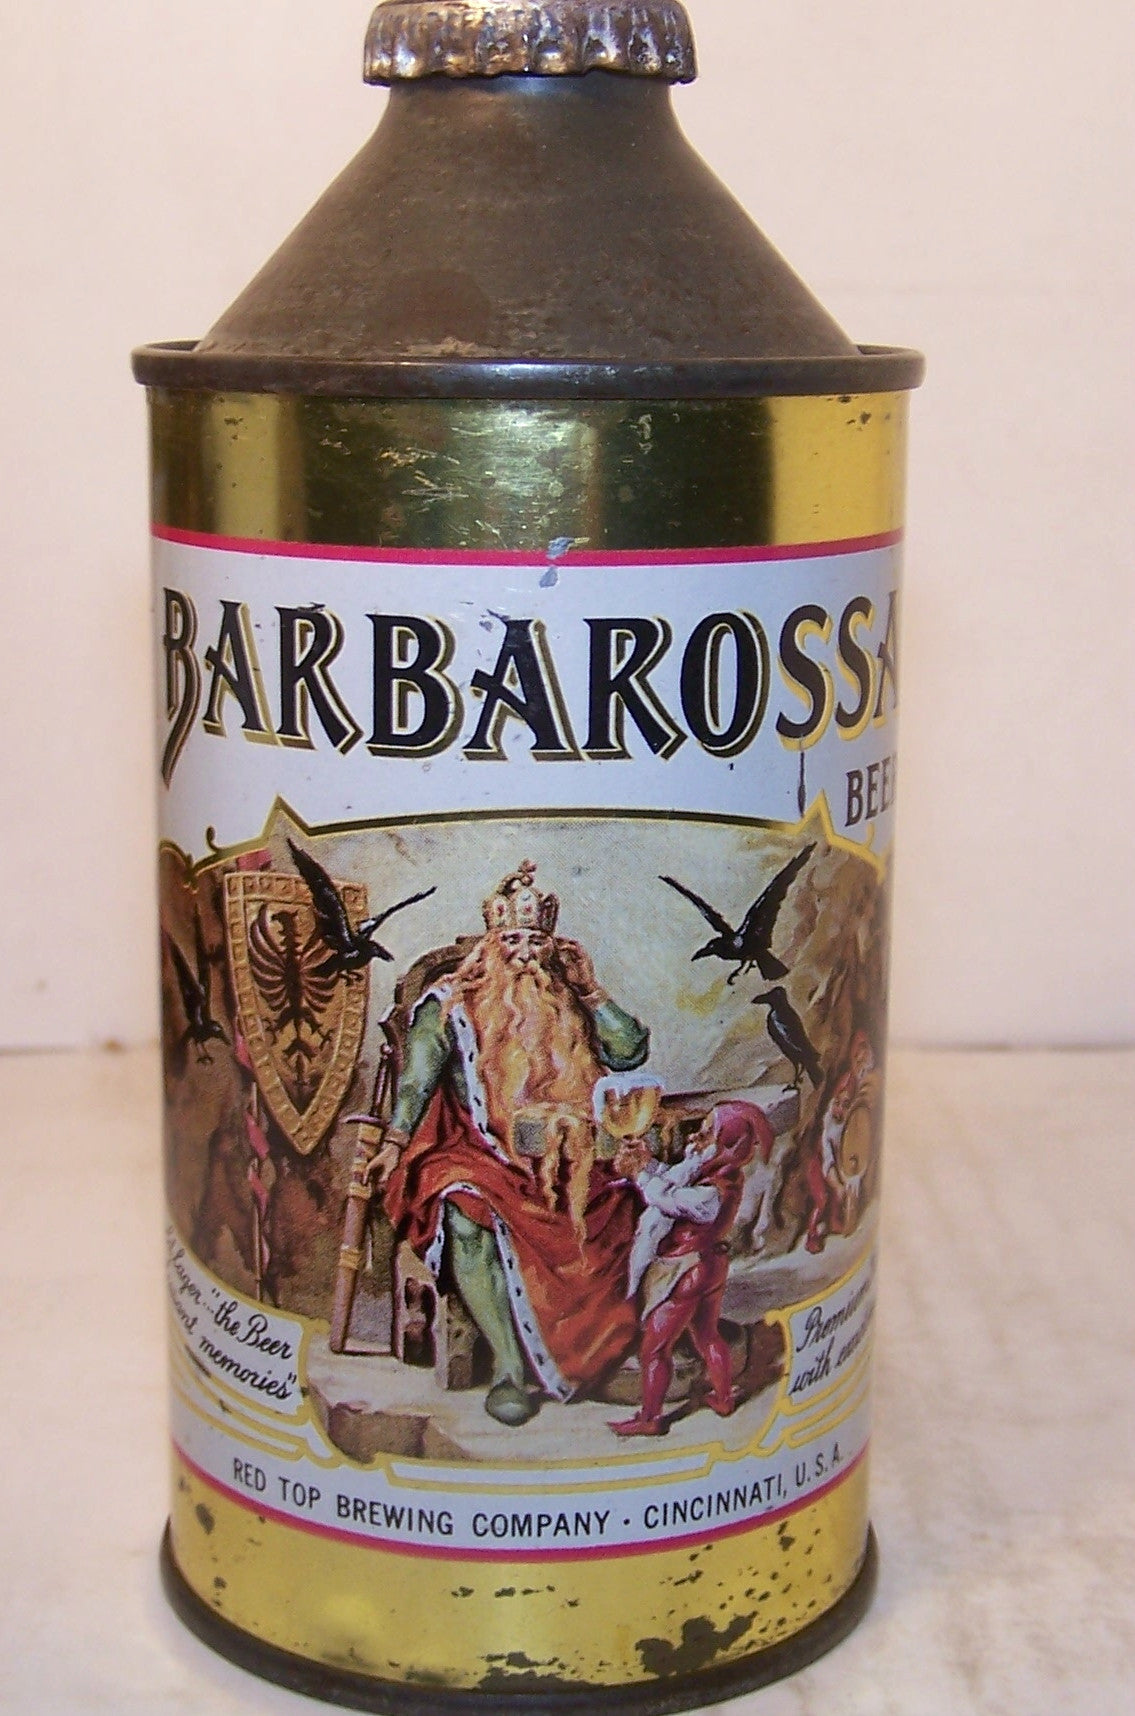 Barbarossa Beer, USBC 150-28, Grade 1-  Sold on 3/2/15